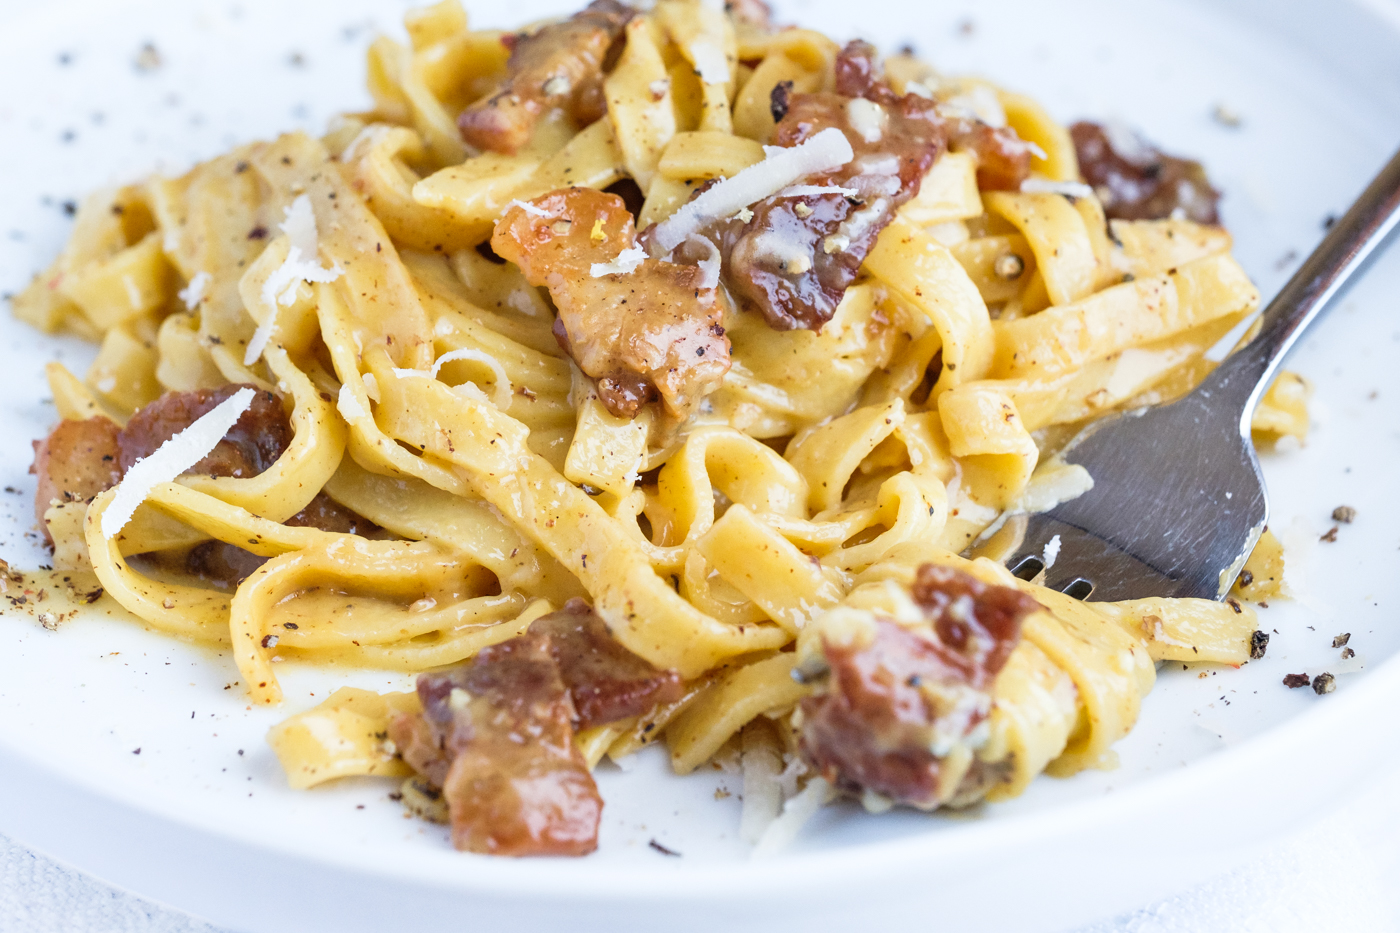 Grain-Free Fettuccine Carbonara. This one is made with fresh pork belly.